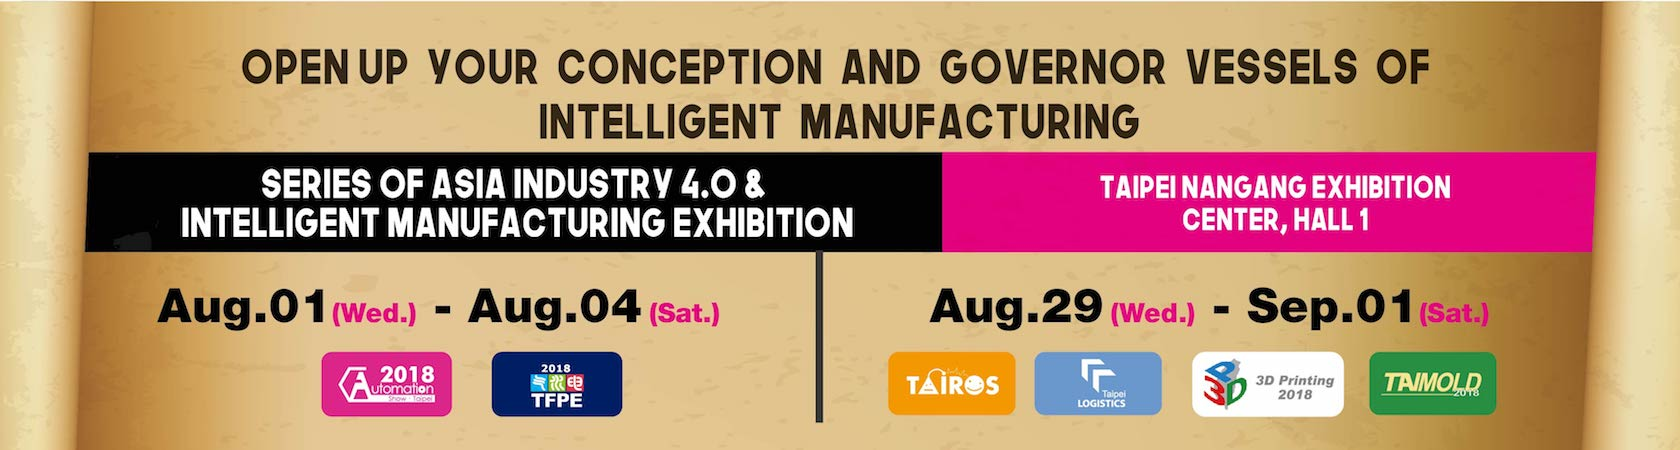 series of asia industry 4.0 & intelligent manufacturing exhibition